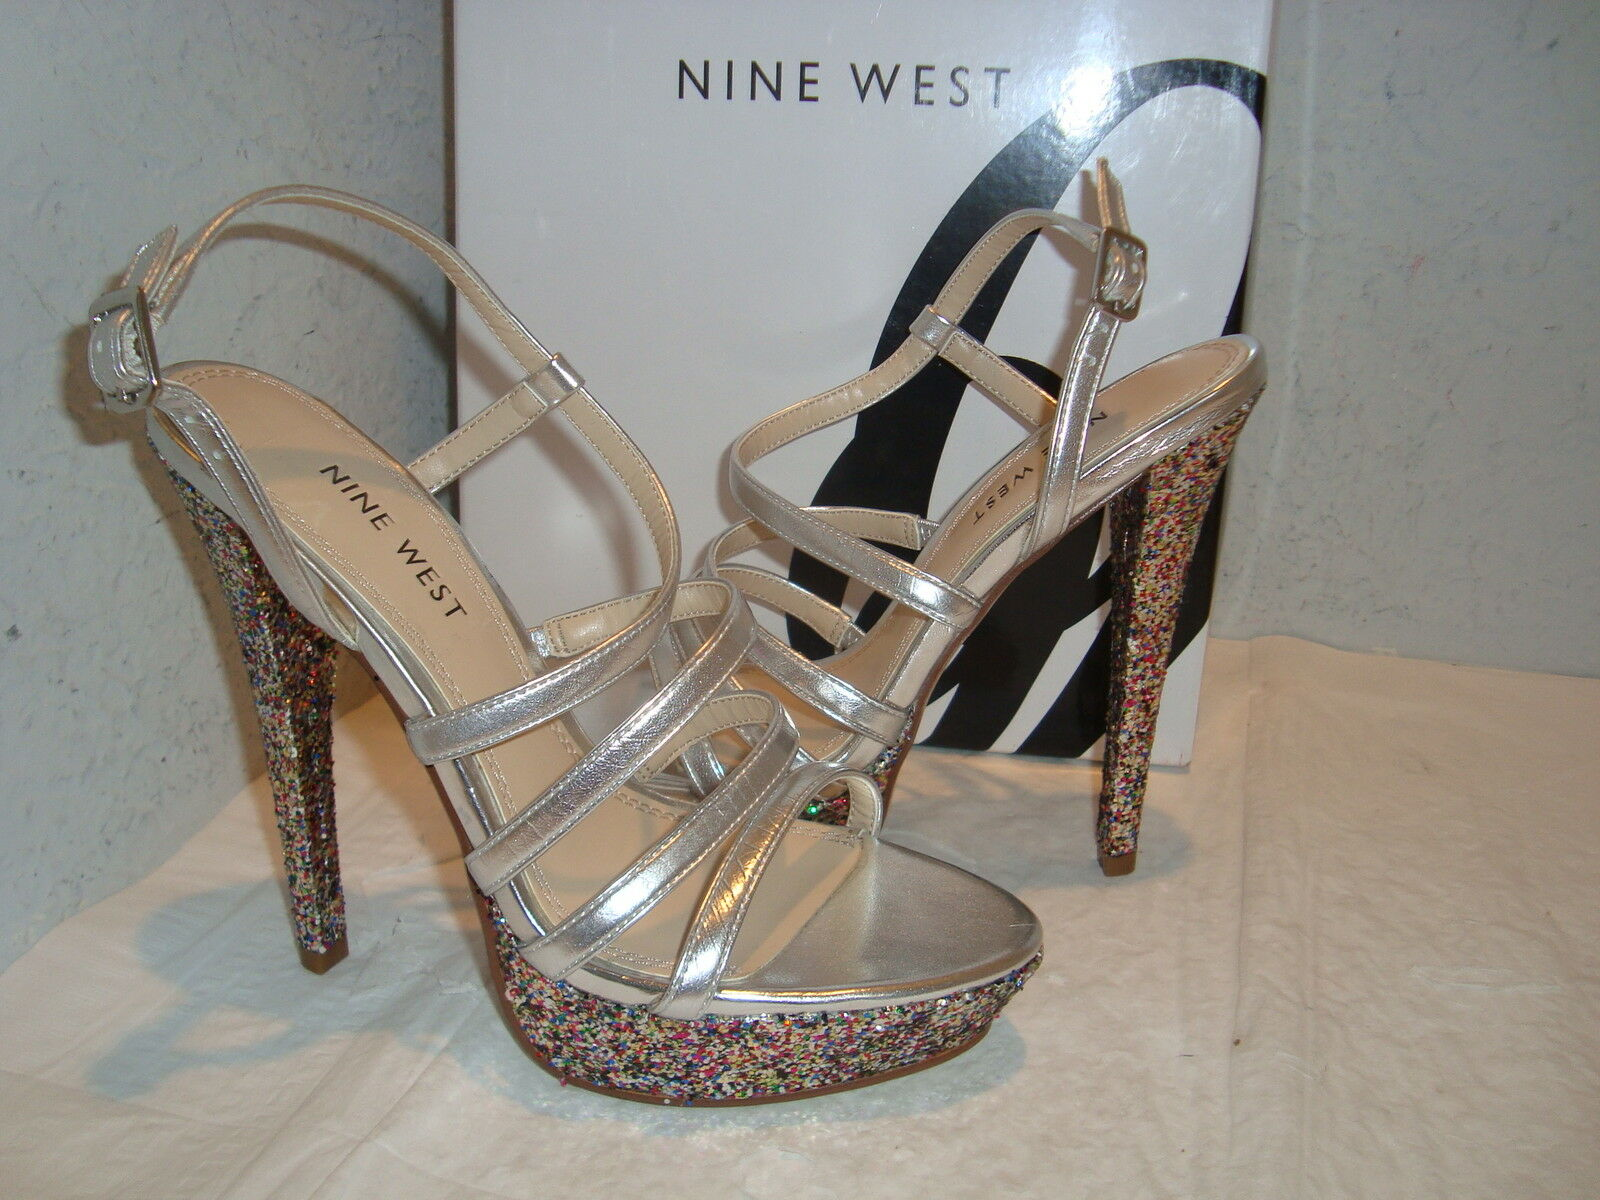 New Nine West Womens ArmCandy Glitter Heel Silver Sandals shoes 7.5 Medium